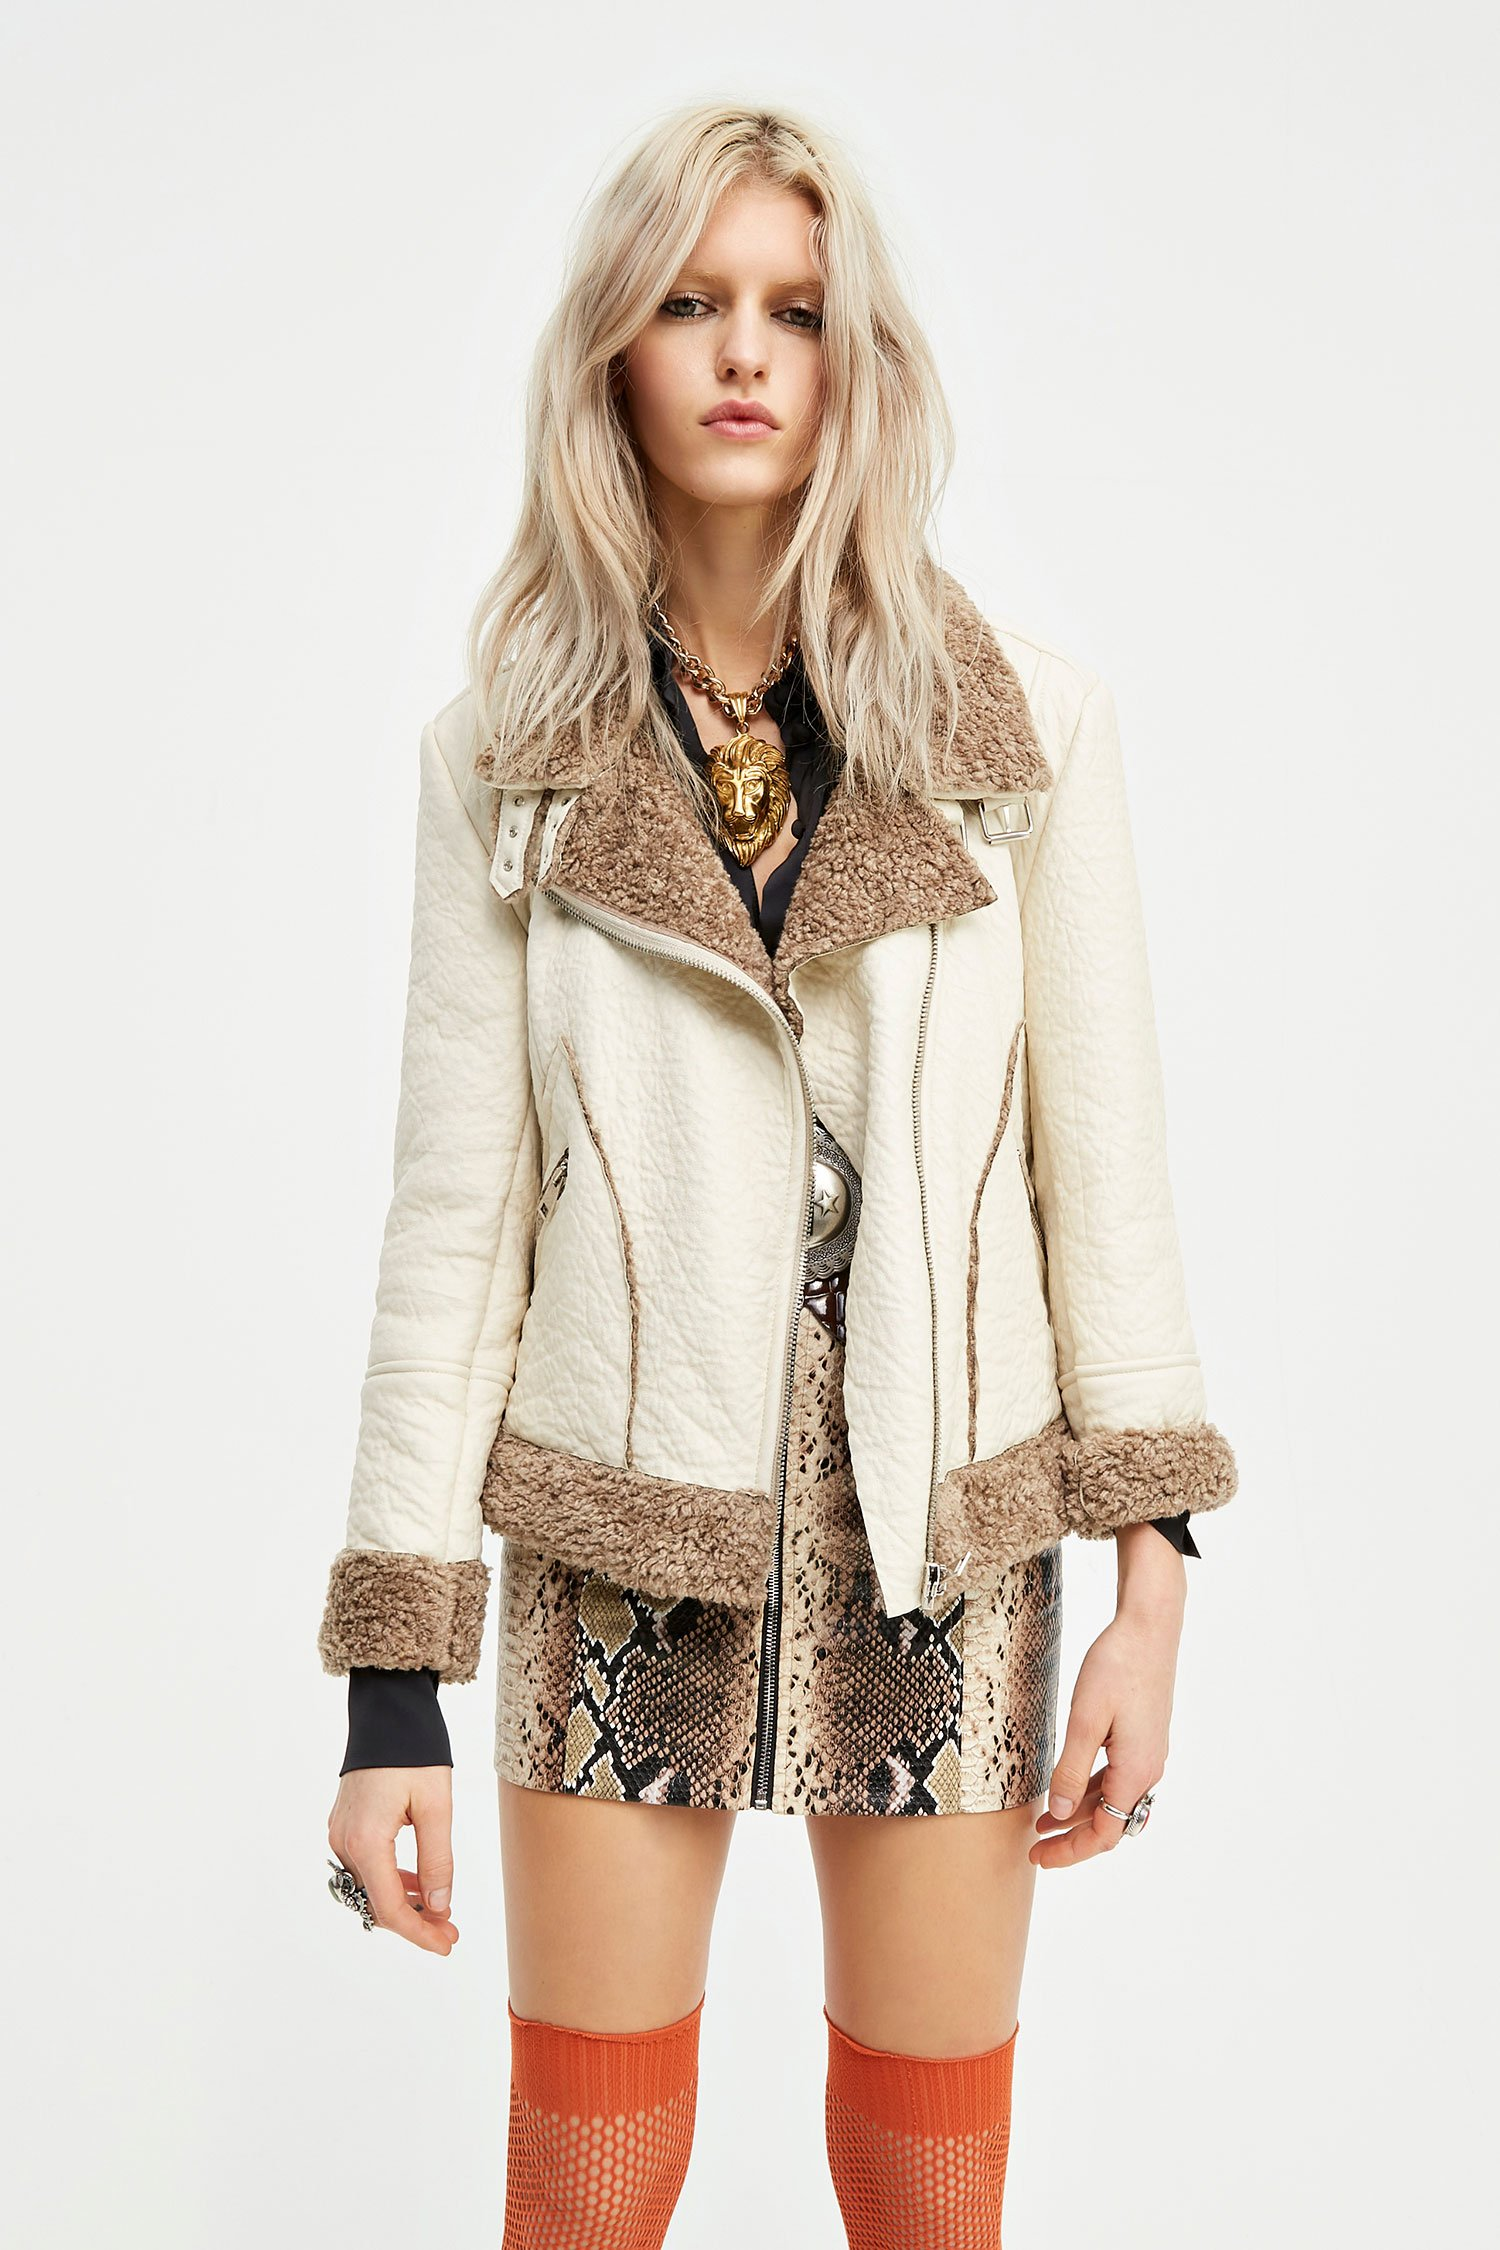 SHOPPING ON LINE ANIYE BY ANIYE MOLLY JACKET  NEW COLLECTION  WOMEN'S FALL/WINTER 2022